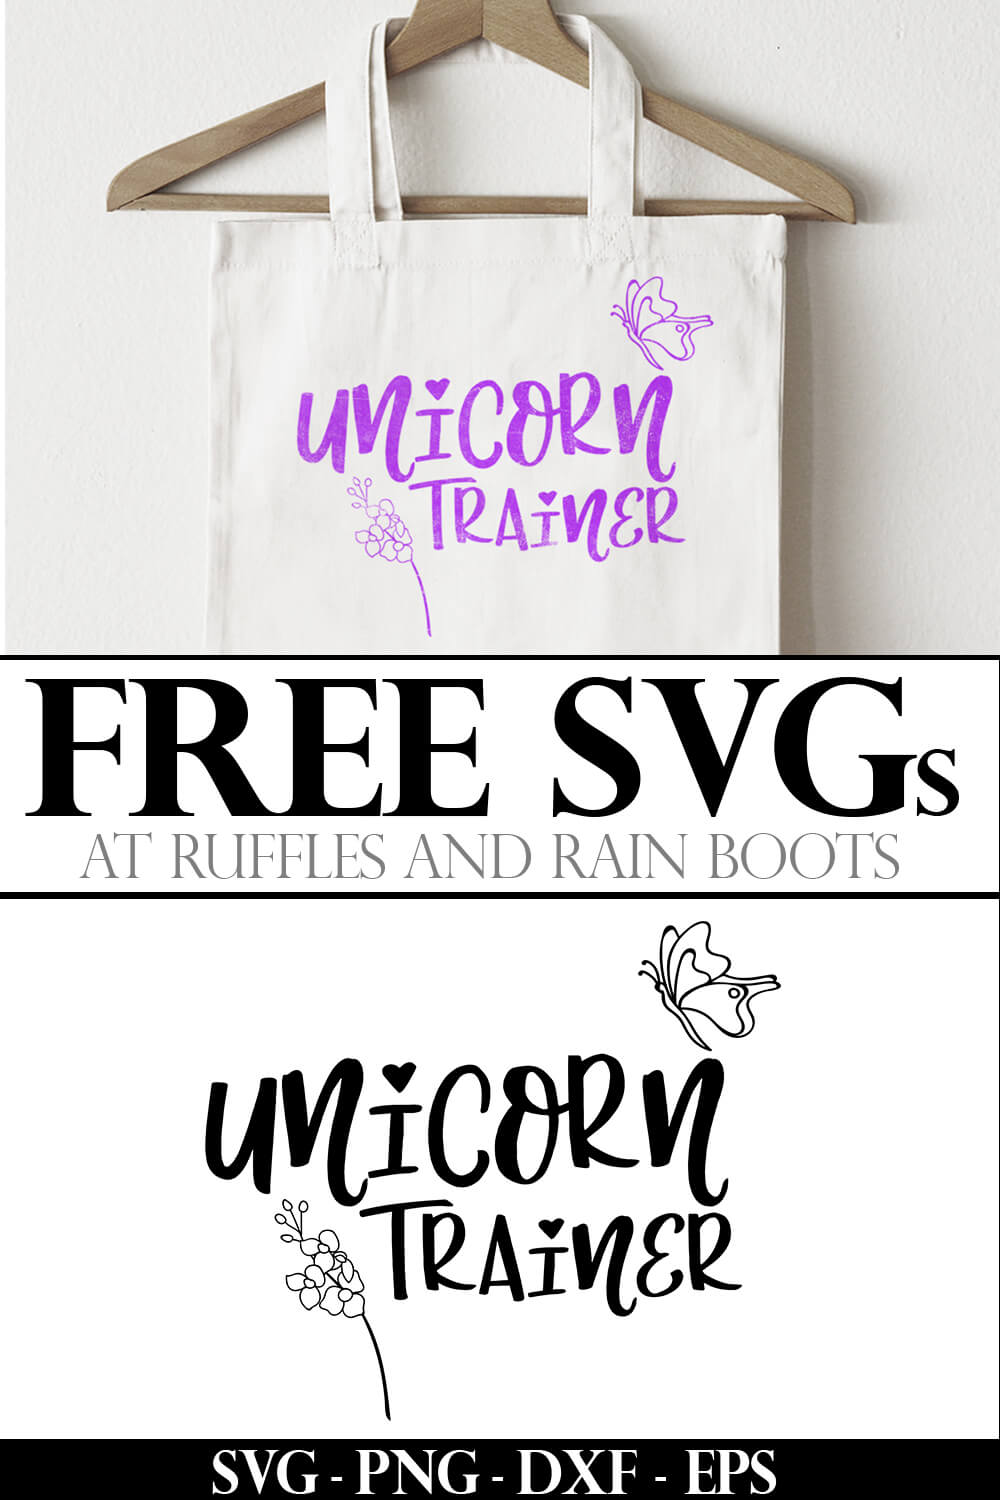 photo collage of unicorn trainer free unicorn svg on a beach bag with text which reads free svgs